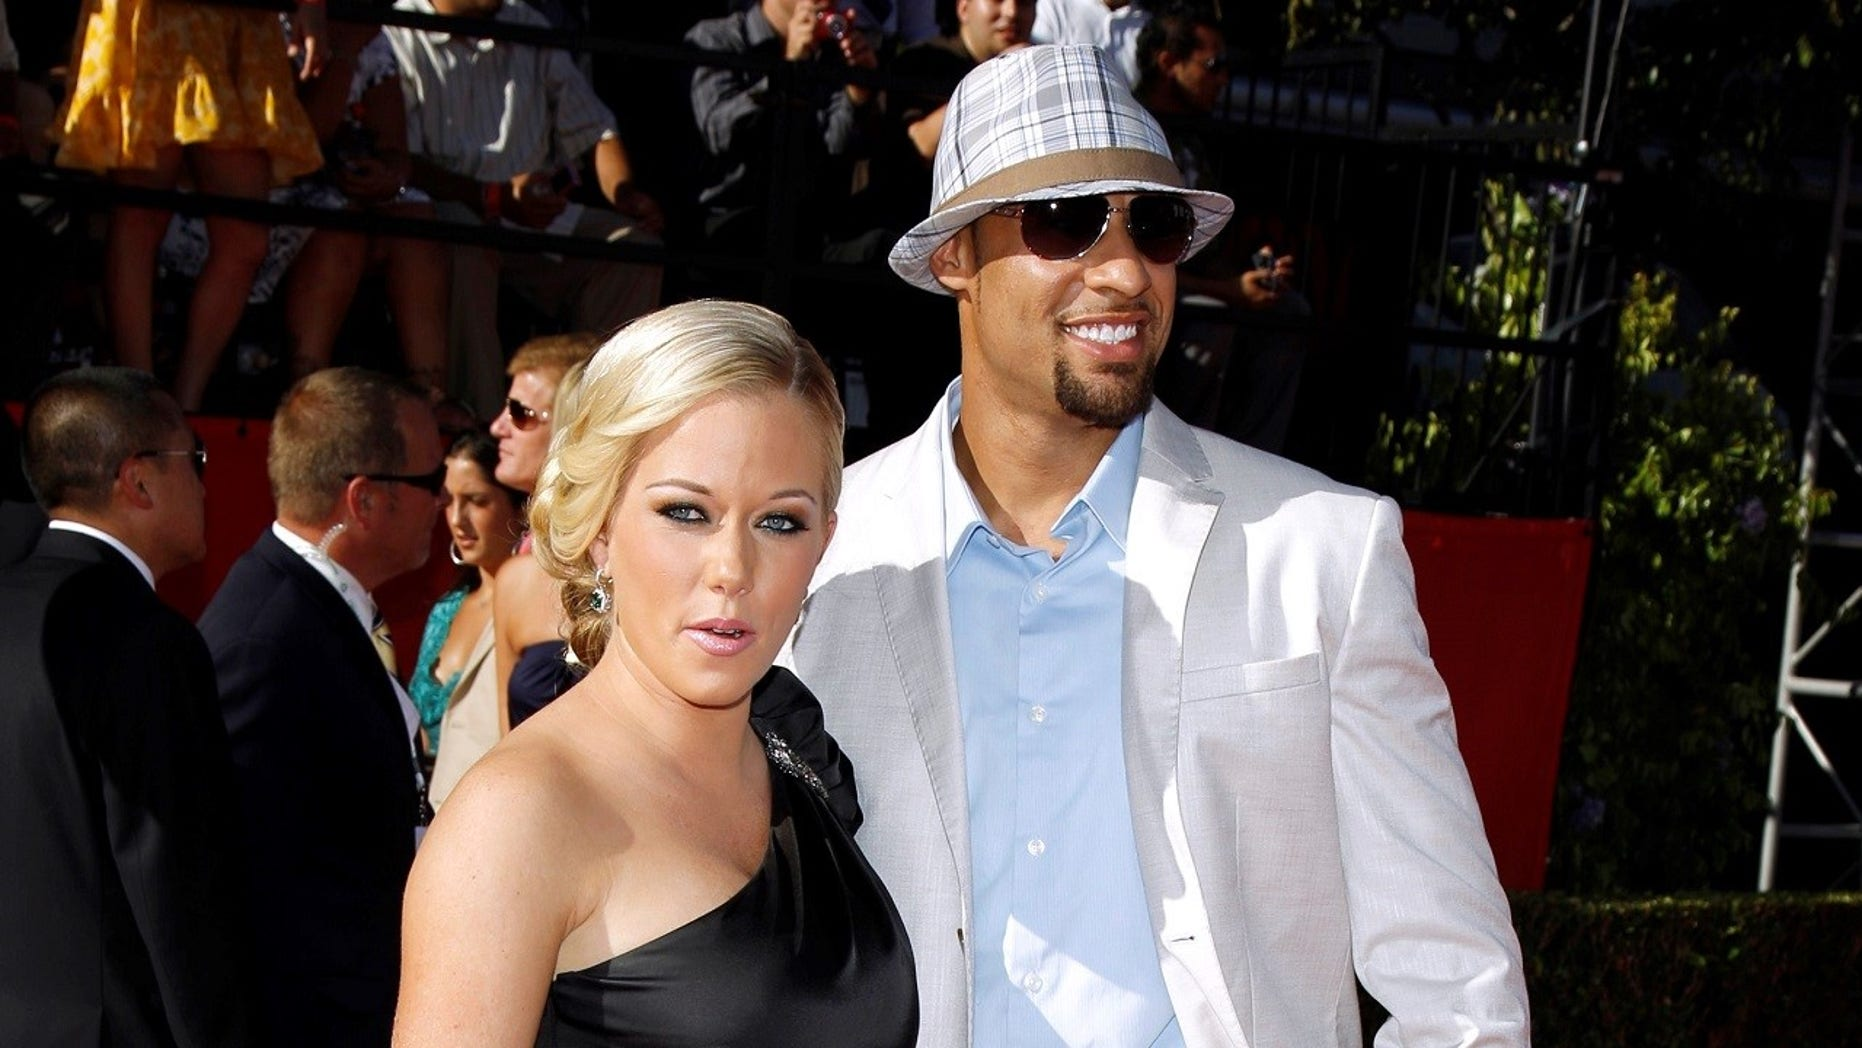 Kendra Wilkinson and Hank Baskett pose together during better times in 2009.